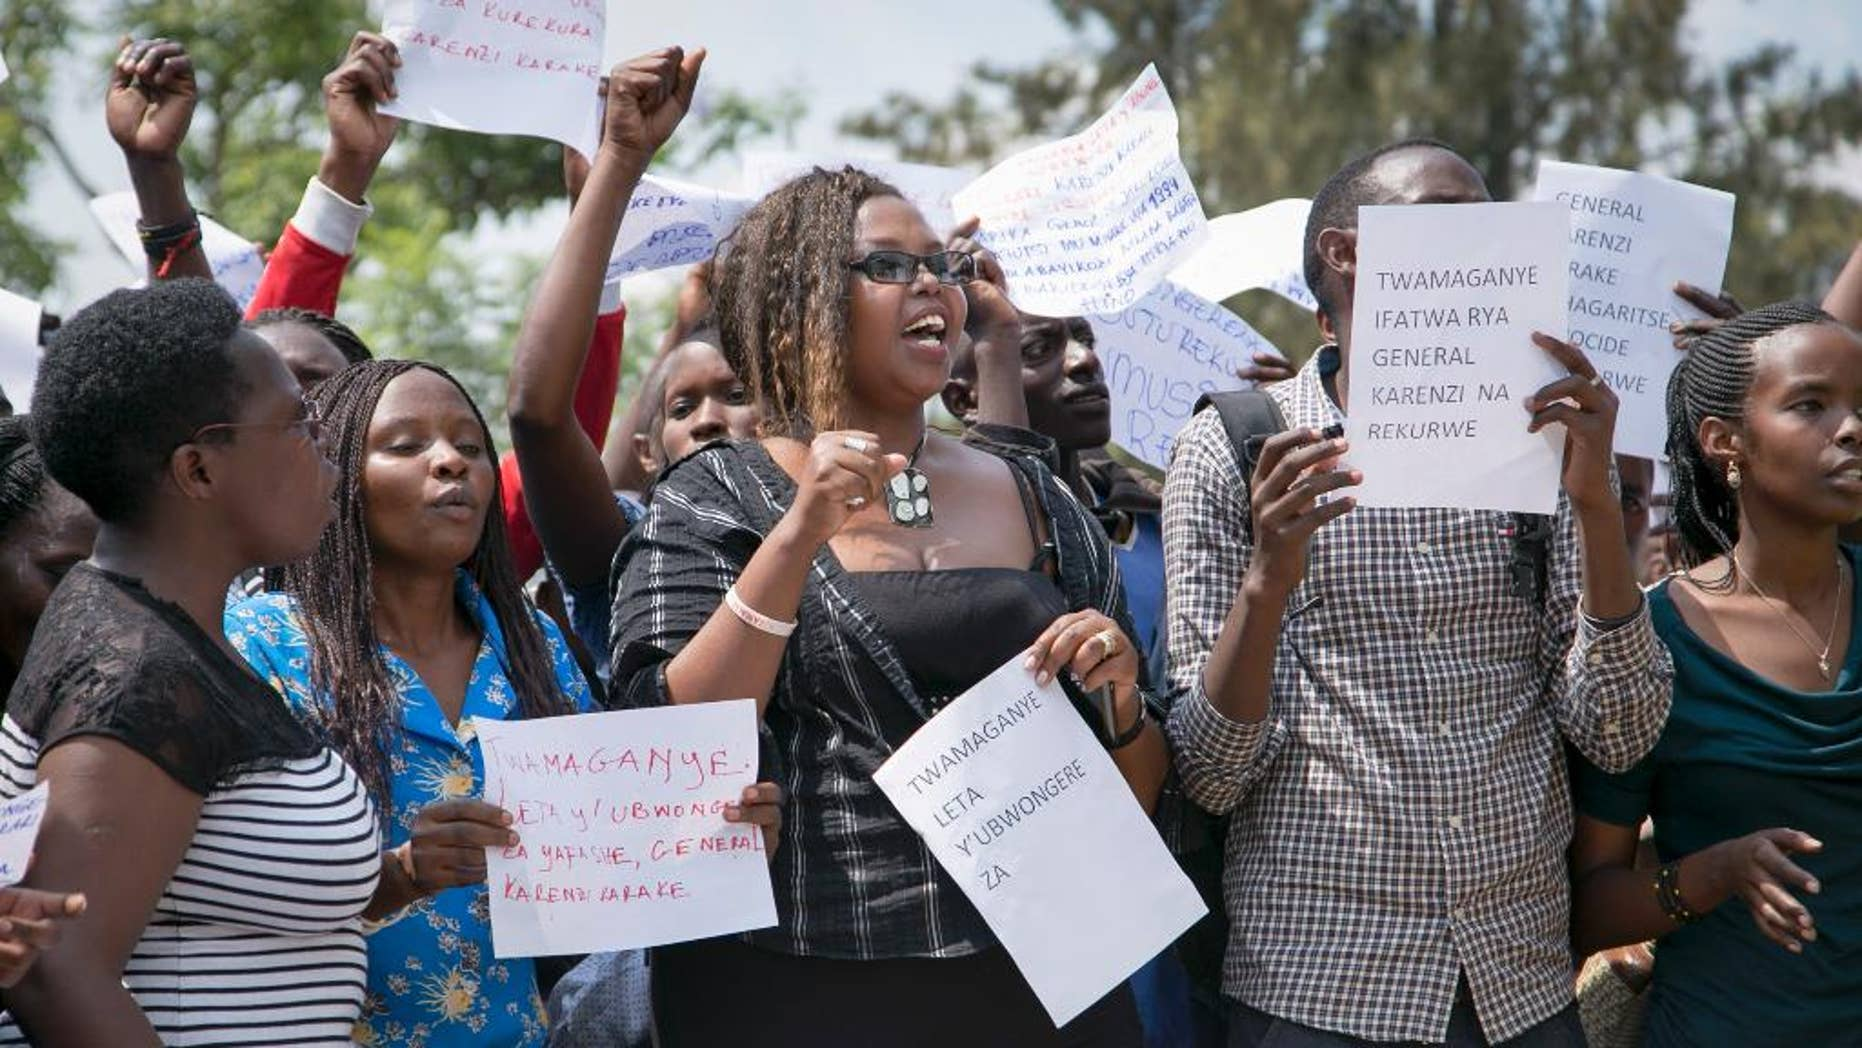 """Protesters calling for the release of Lt. Gen. Karenzi Karake, who serves as Rwanda's spy chief, demonstrate outside the British High Commission in Kigali, Rwanda Wednesday, June 24, 2015. Hundreds of people demonstrated outside the British High Commission in Rwanda saying they will not return home until Karake, who was detained in the UK, is set free. Placards in front row in Kinyarwanda from left to right read """"We protest the government of United Kingdom which arrested General Karenzi Karake"""", """"We protest the government of United Kingdom"""" and """"We protest the arrest of General Karenzi; free him."""" (AP Photo/Denyse Uwera)"""